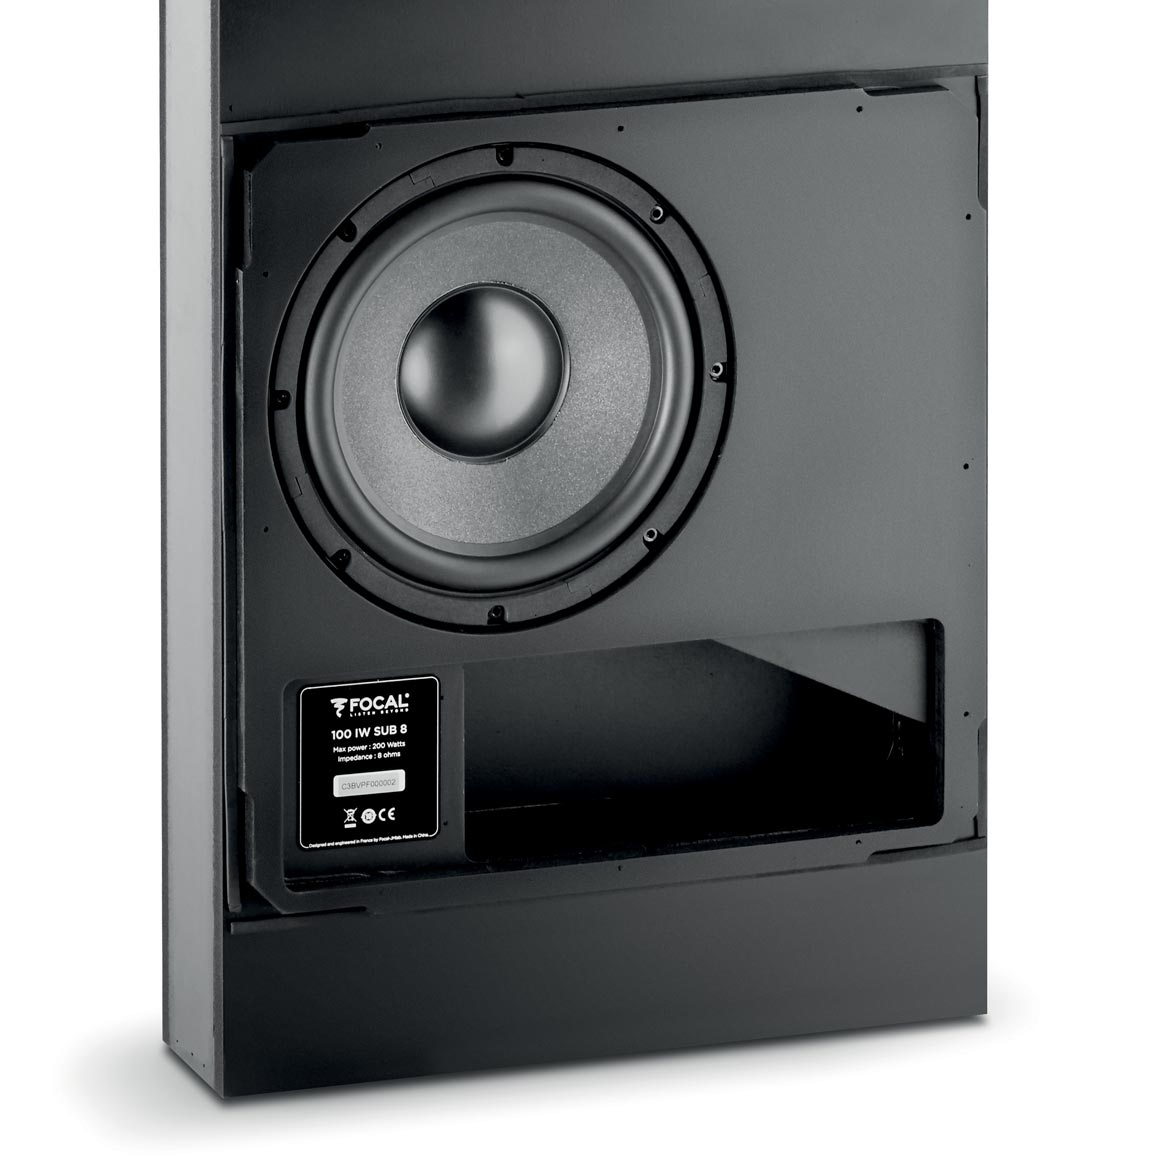 100 IWSUB8 - a subwoofer to be installed in the walls   Focal